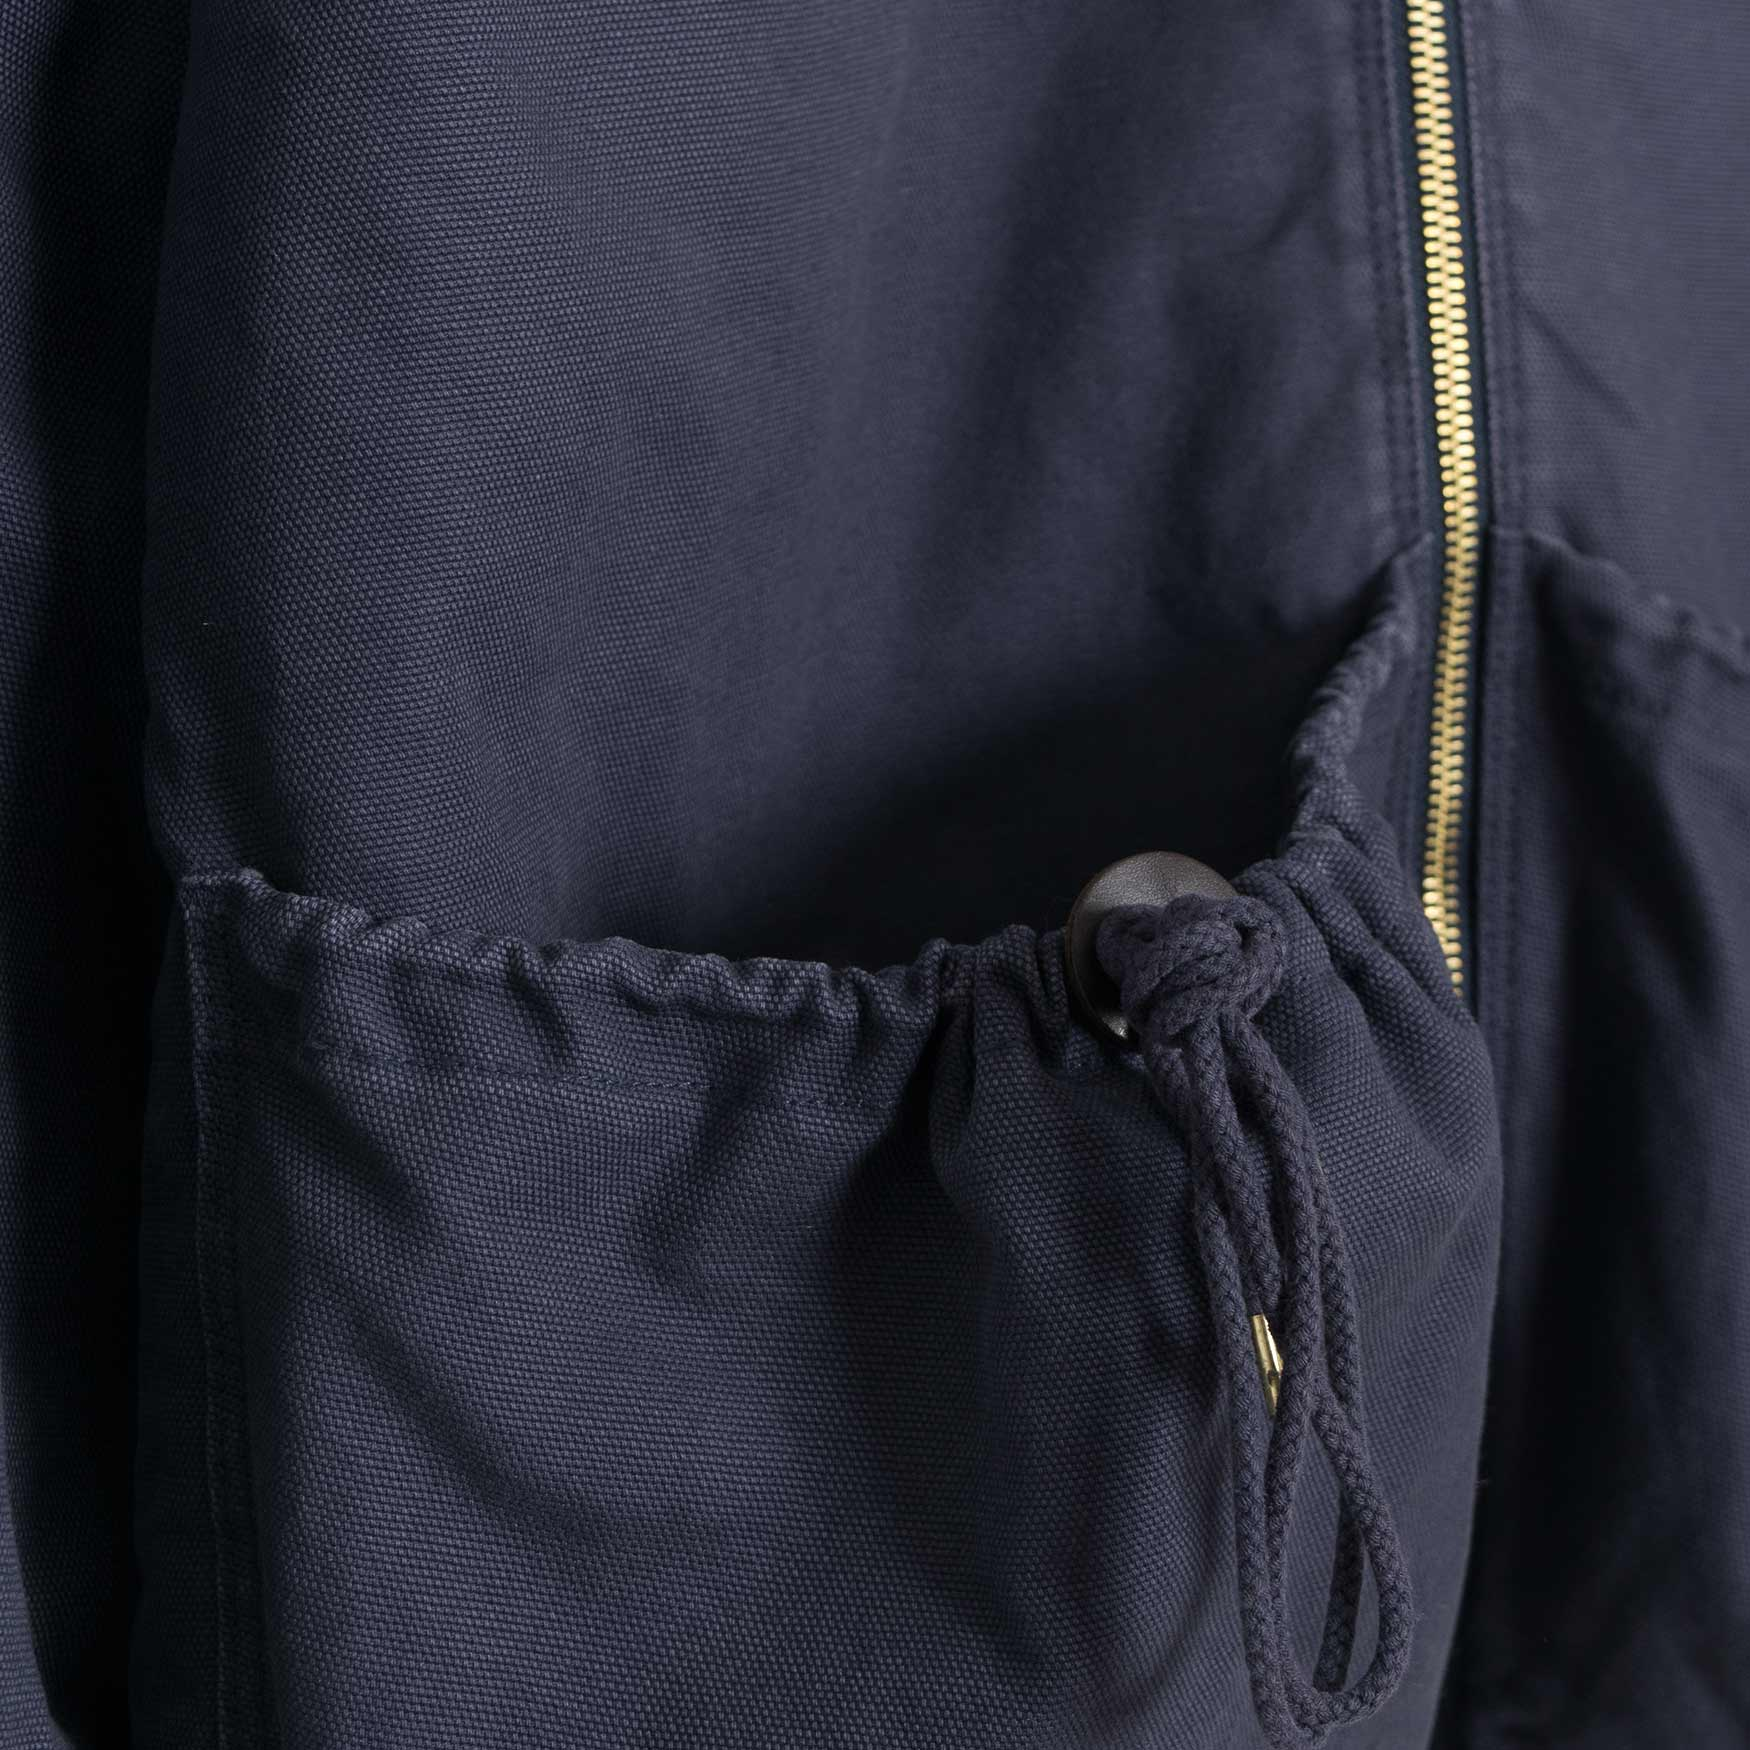 Garbstore APS Jacket - Navy